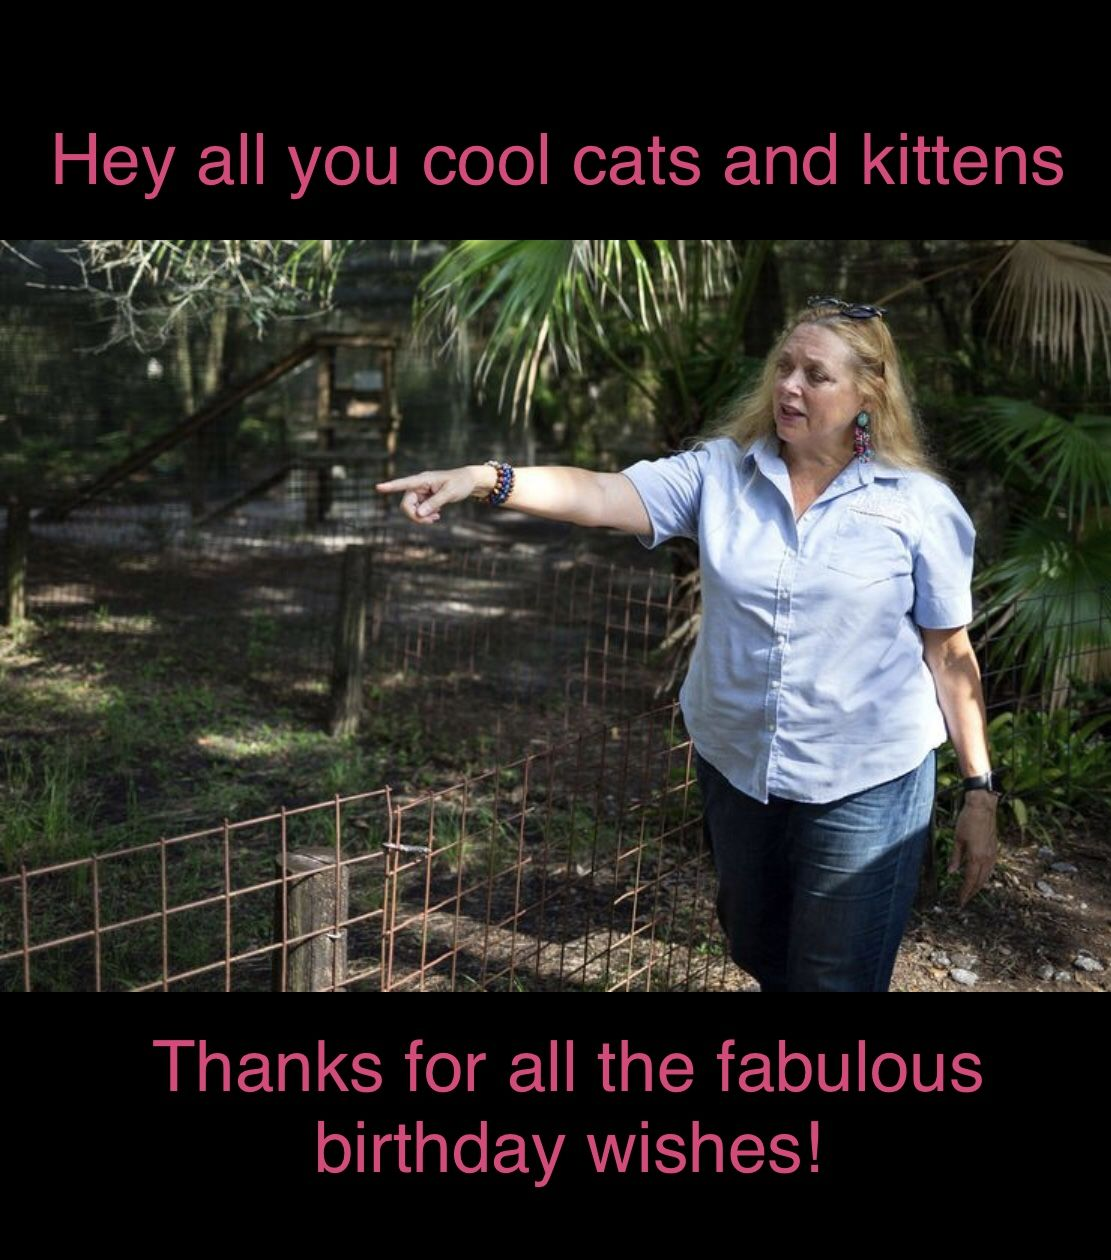 Carole Baskin Birthday Meme In 2020 Cool Cats Cats And Kittens Kittens